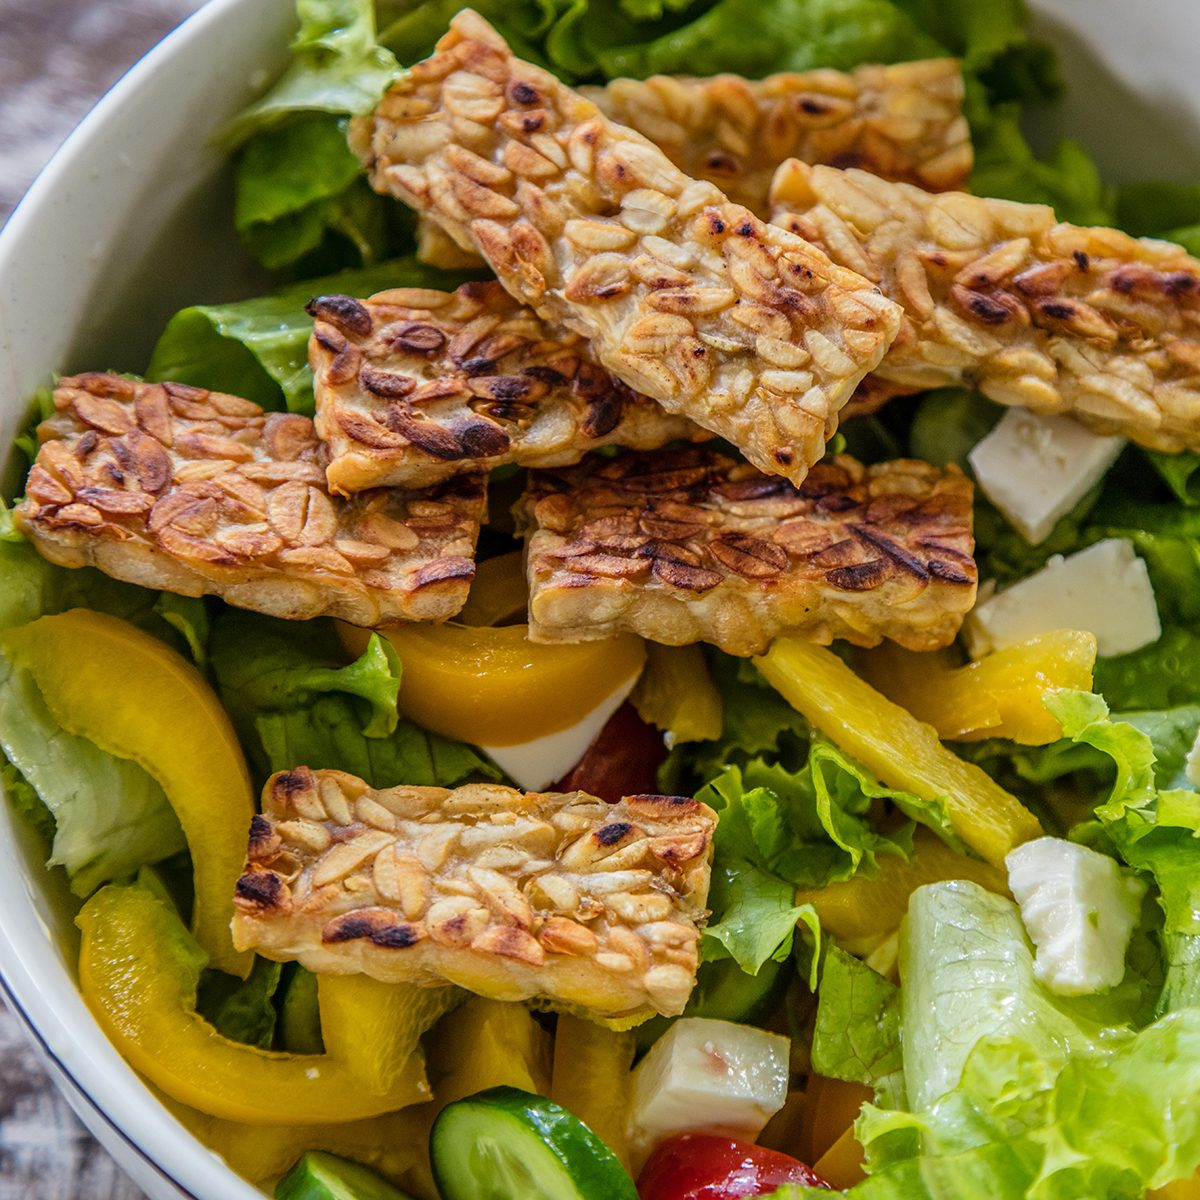 Raw vegetable and lettuce salad with tempe goreng, fried tempeh,